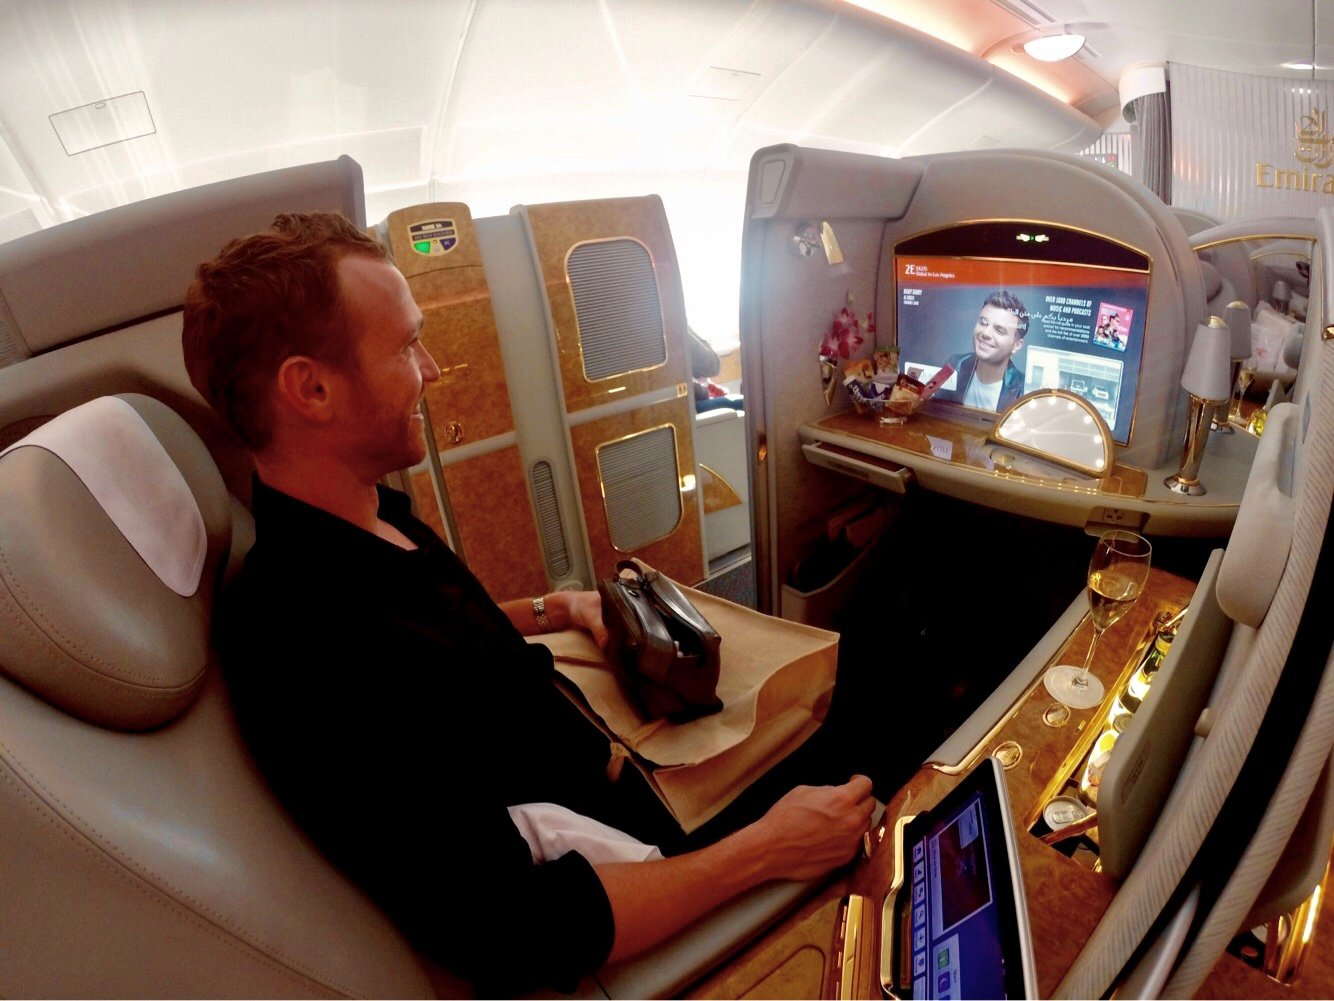 Emirates-First-Class-A380-Seat-with-Amenities-Excitement.jpg